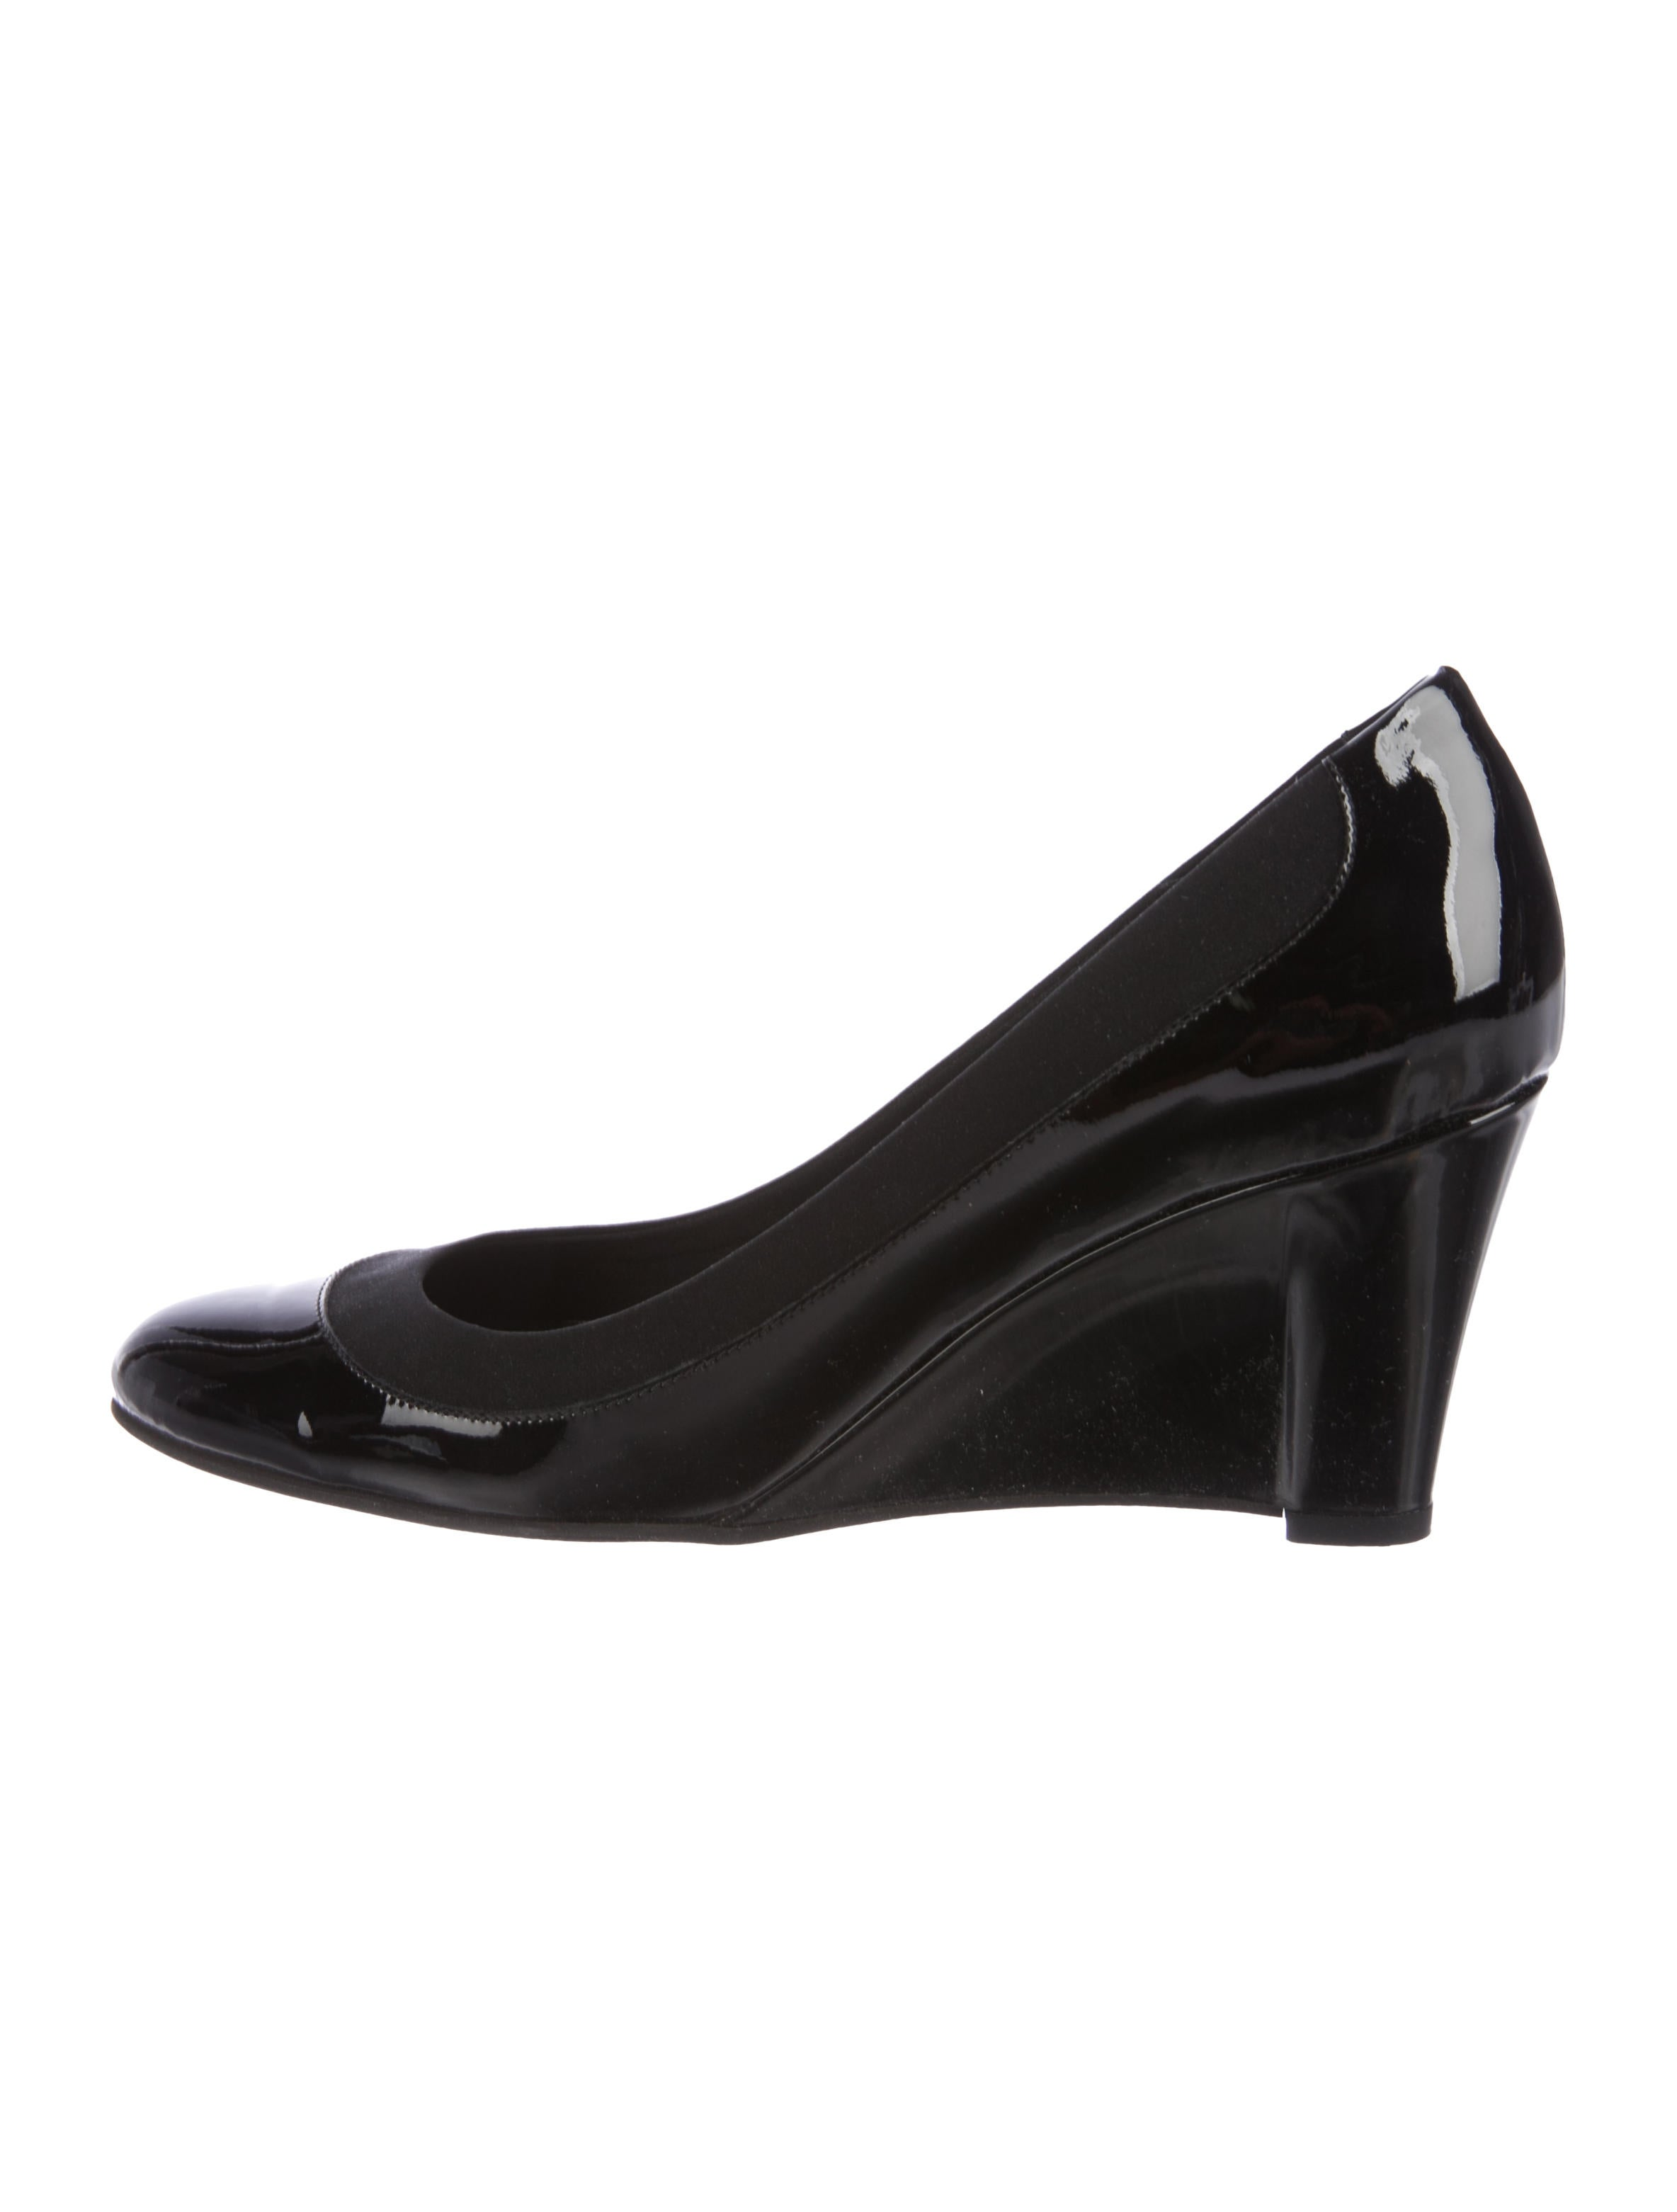 cheap sale real outlet low price Salvatore Ferragamo Navigli Patent Leather Wedges free shipping get authentic D6TBW